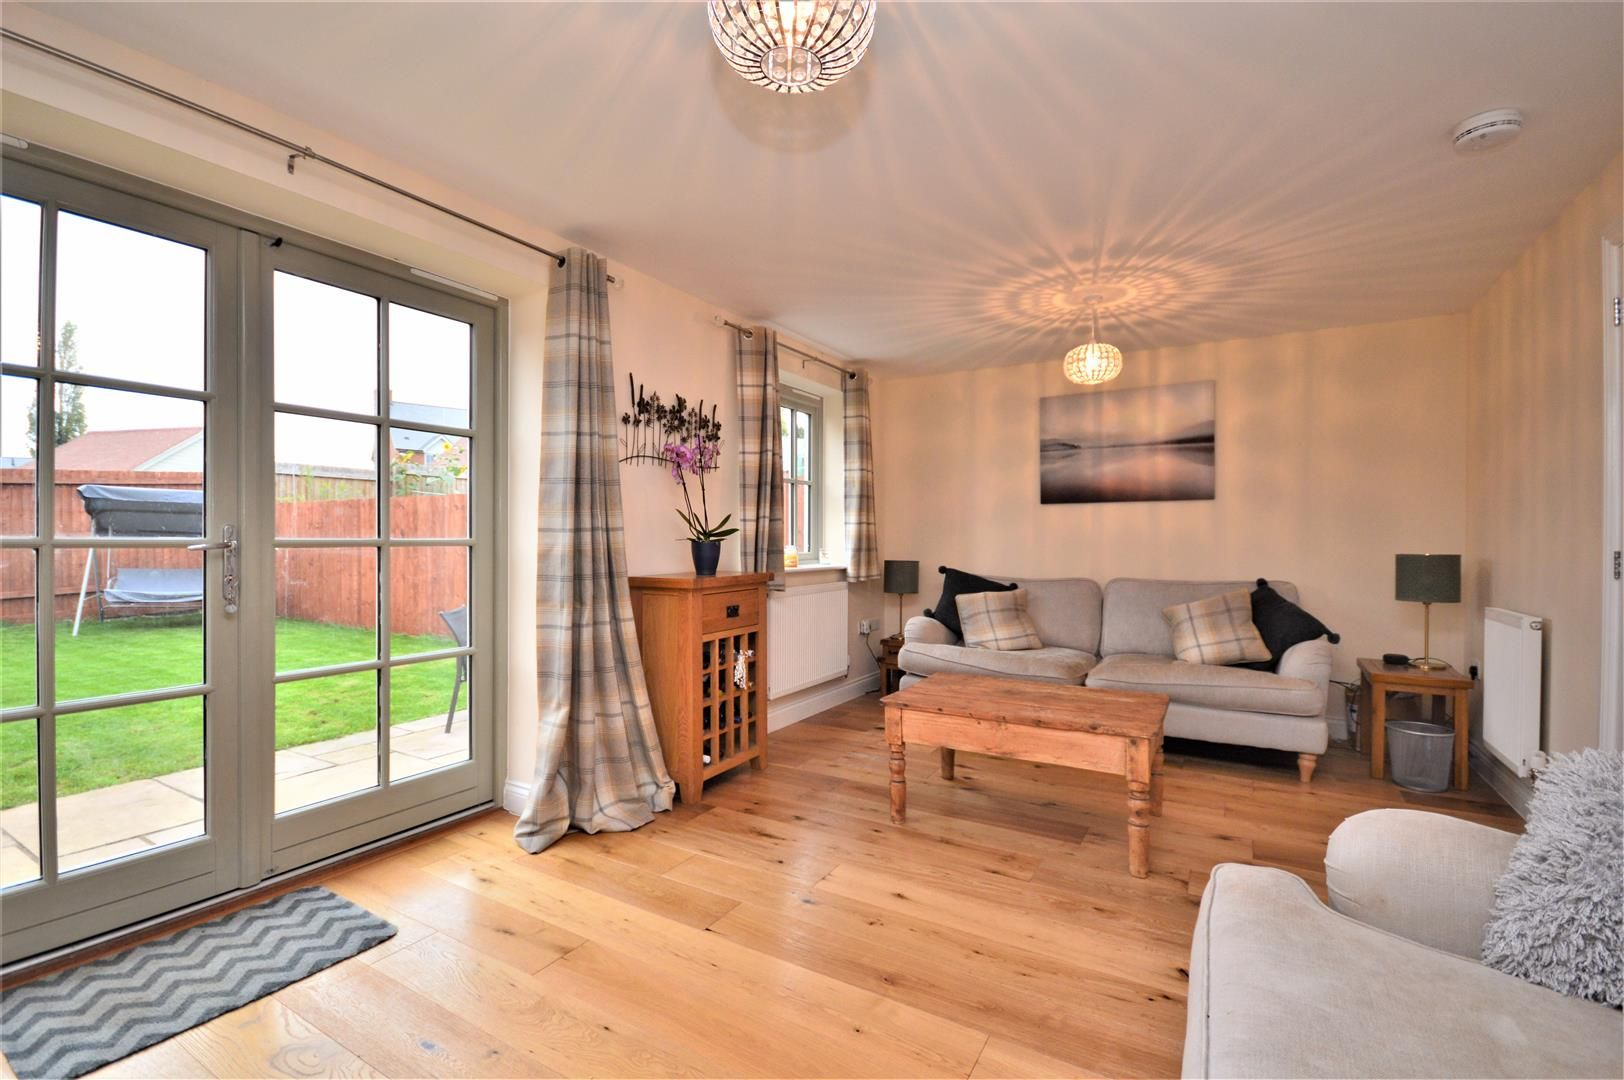 3 bed semi-detached for sale in Bodenham  - Property Image 3